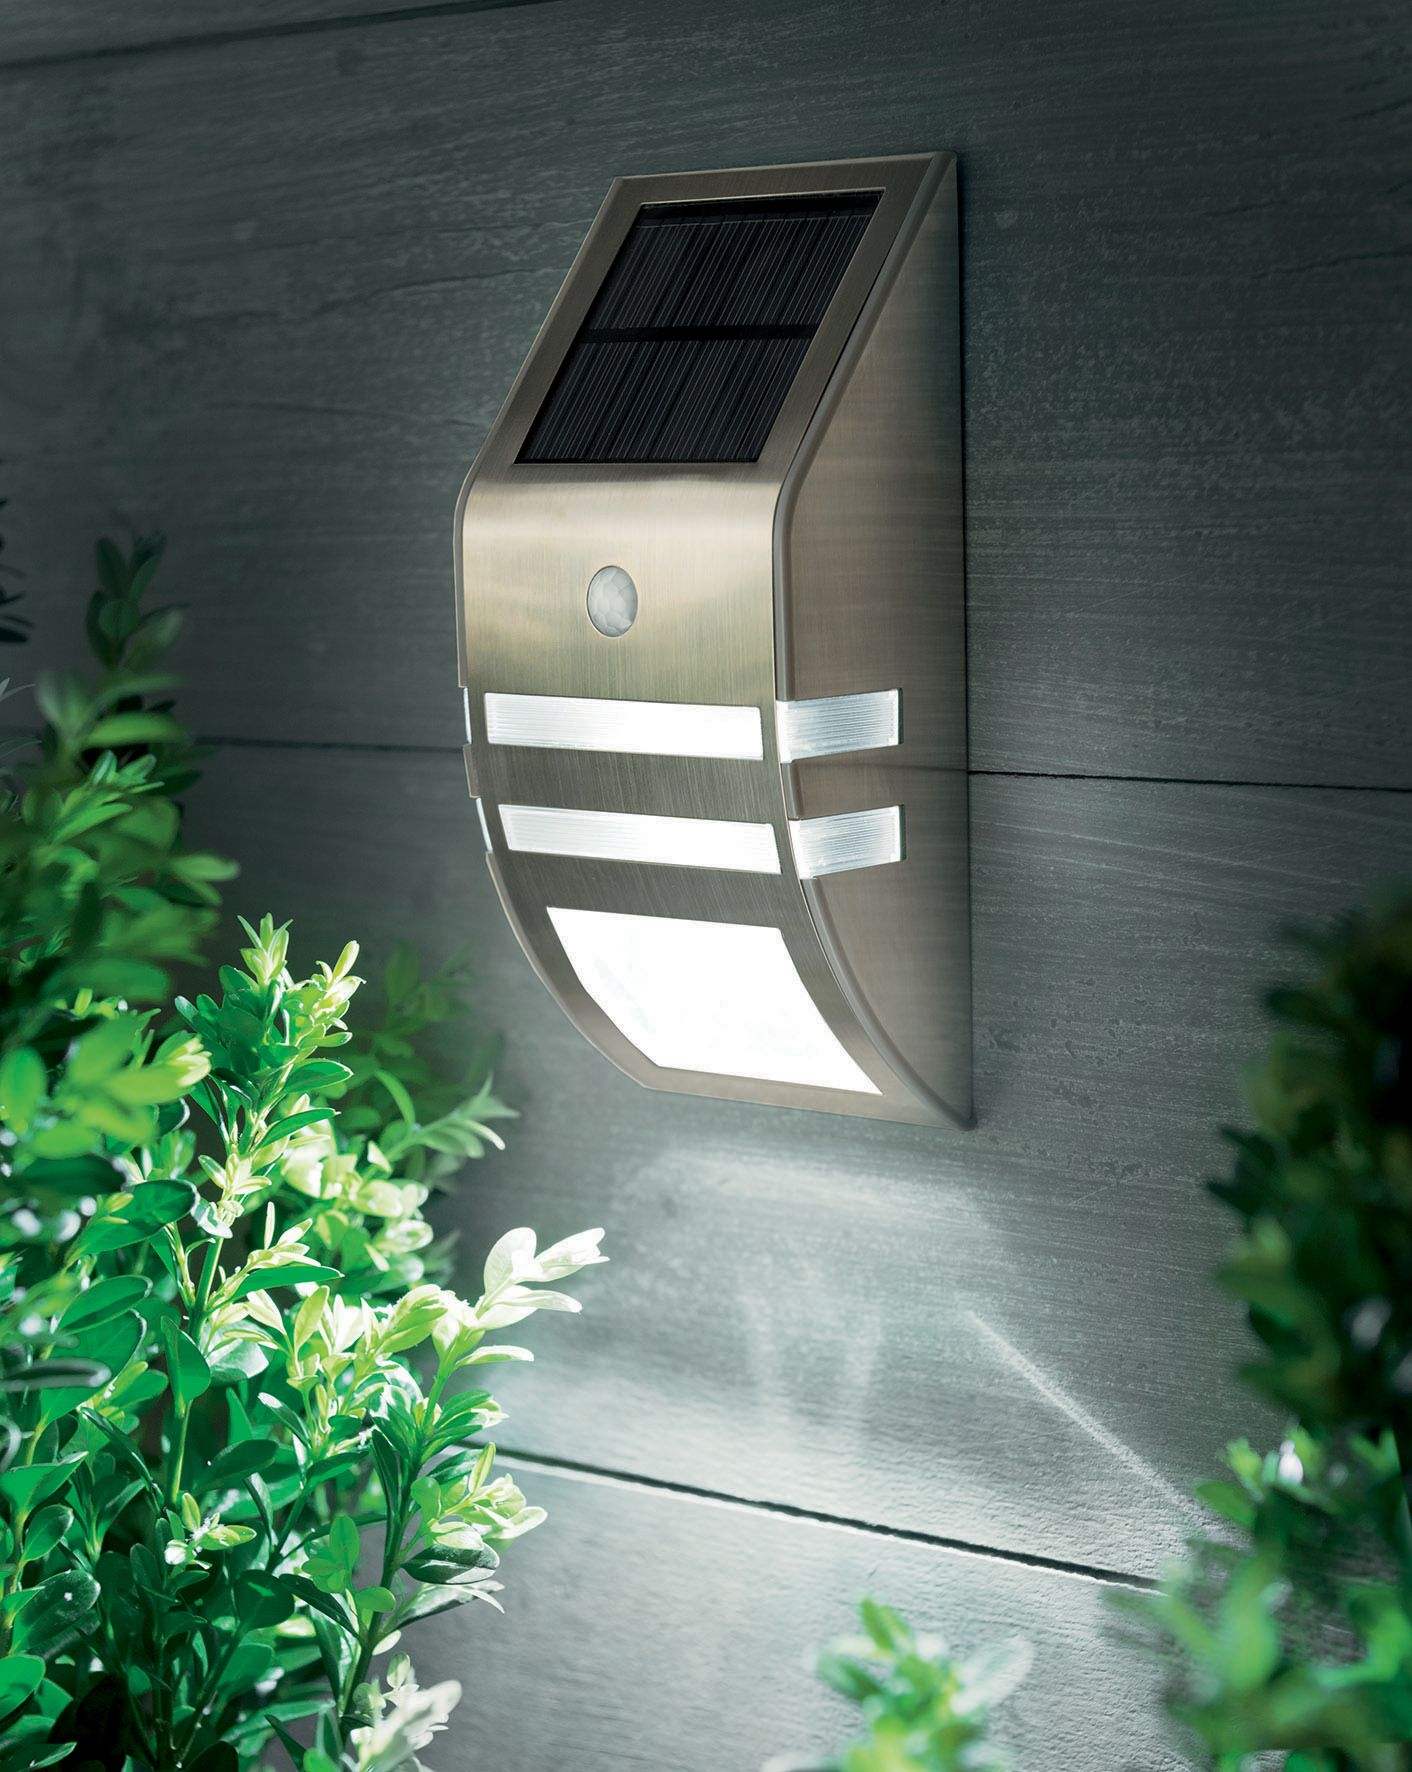 Wickes Garden Wall Lights : Wall Lights Lighting Decorating amp; Interiors Wickes - Wall lights, LED bathroom & bedroom ...